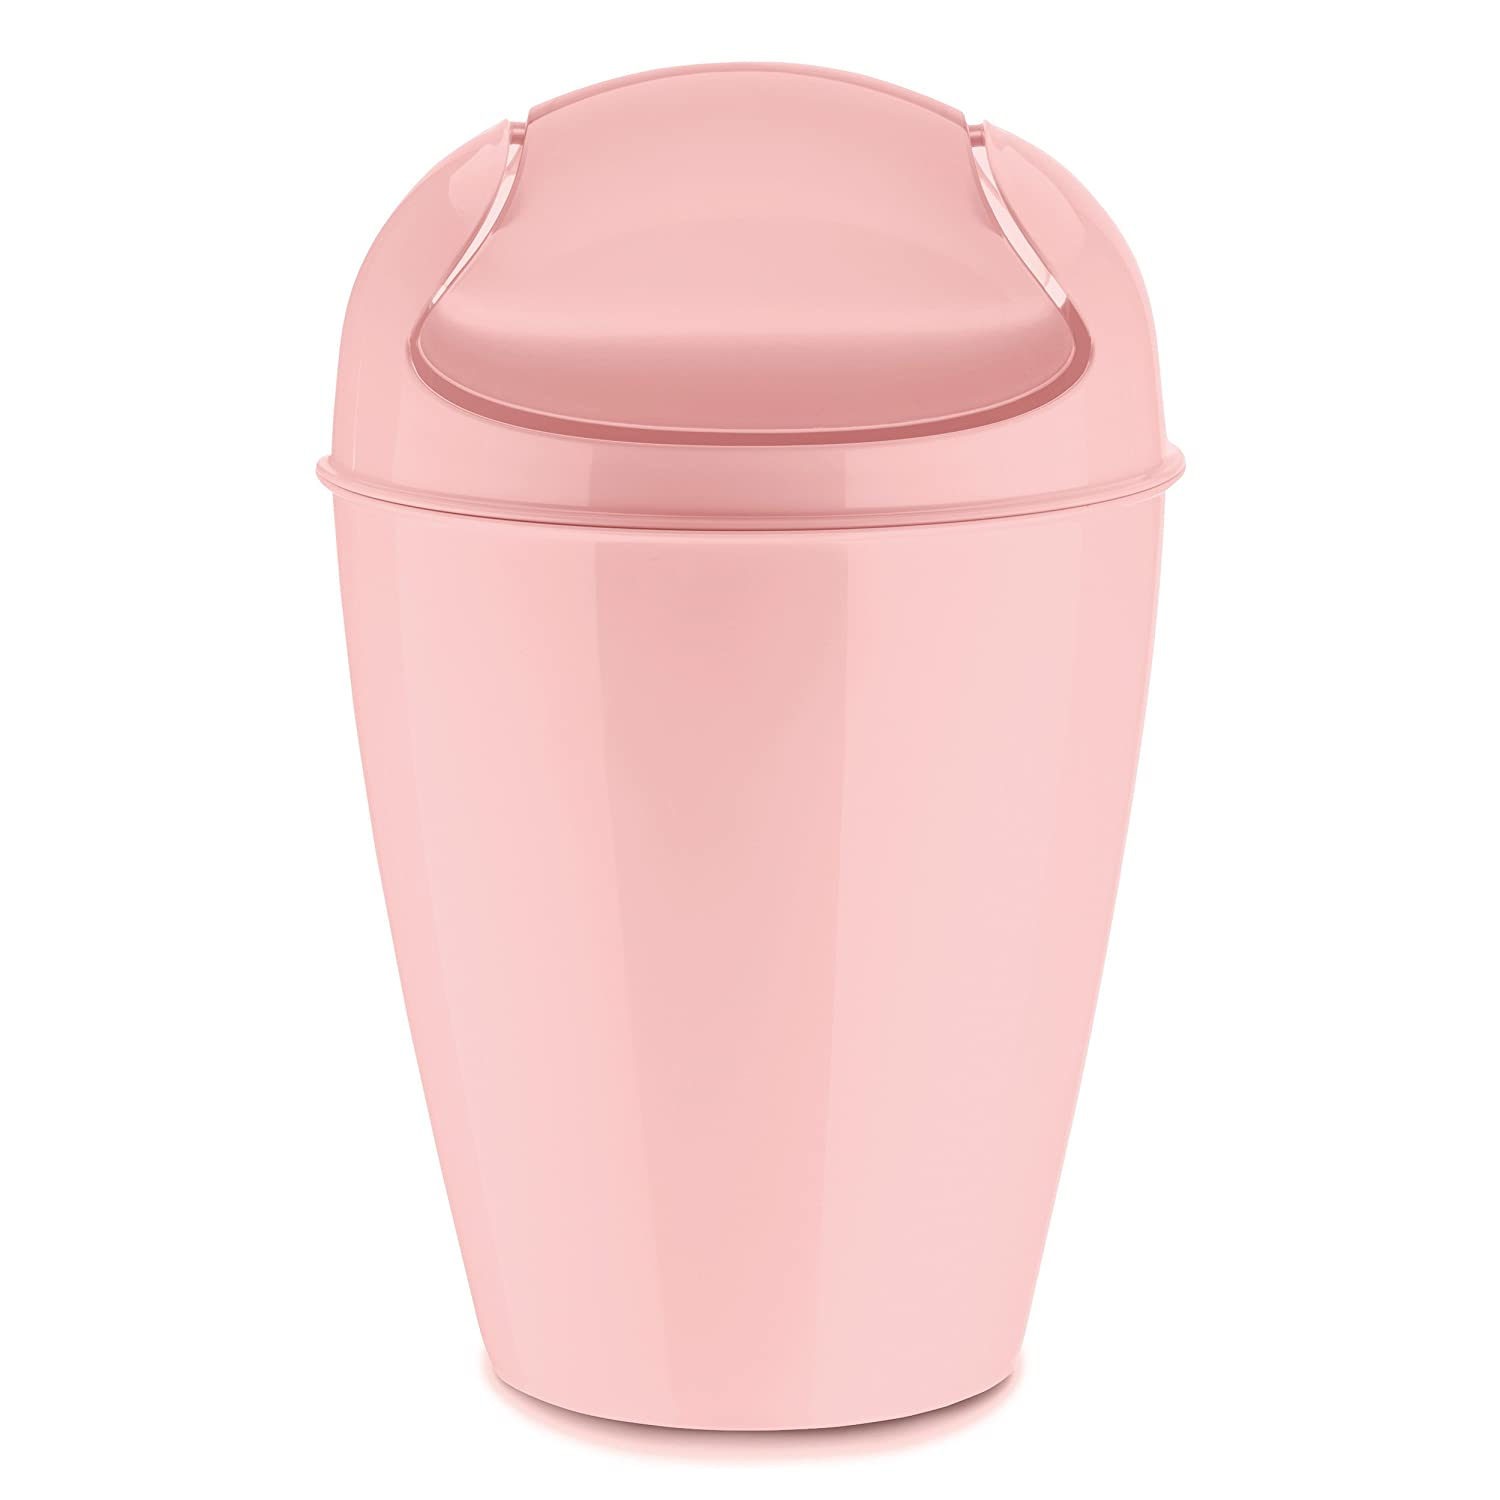 Koziol Swing-Top Wastebasket, thermoplastic, Powder Pink 5777638